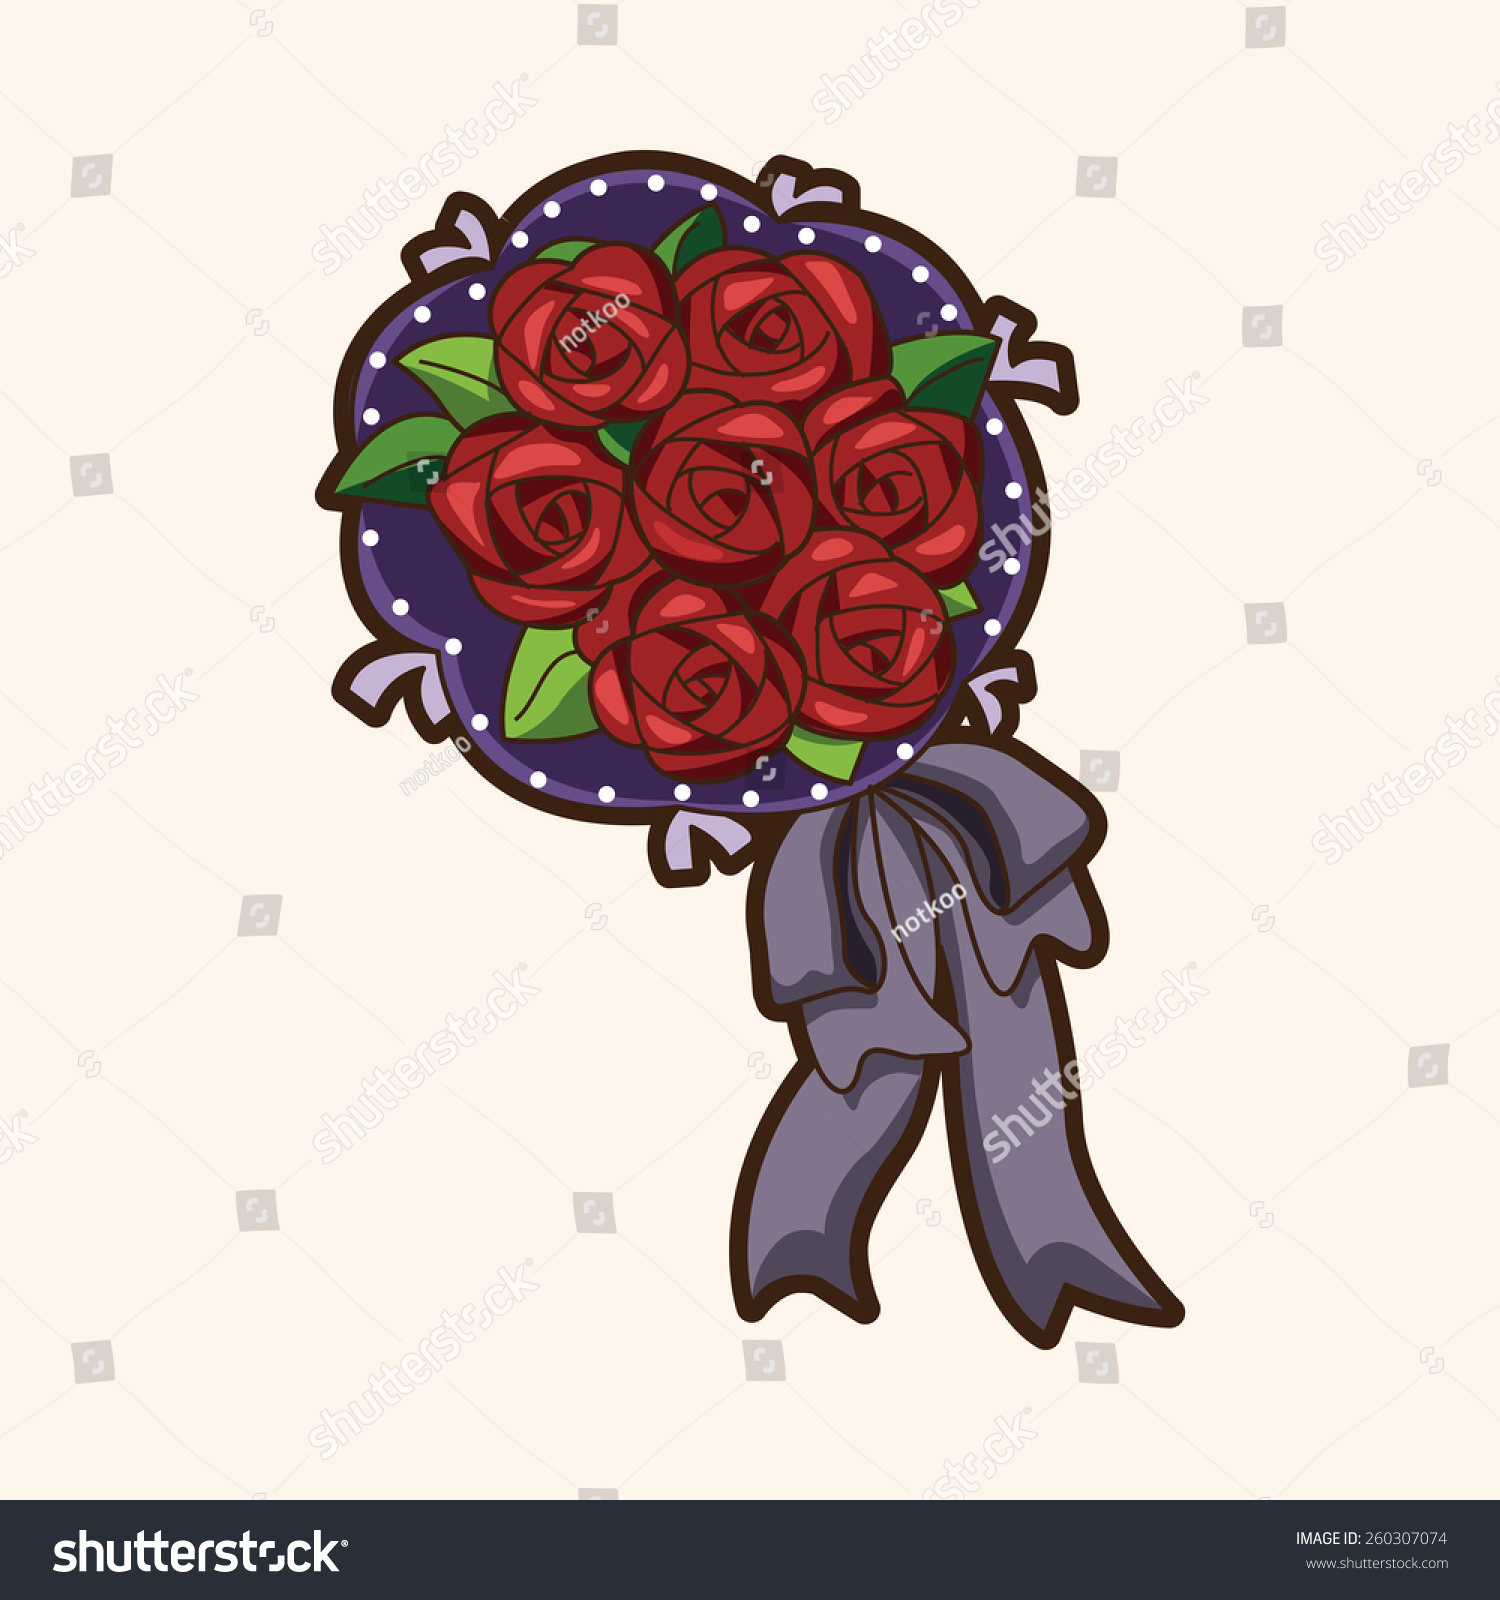 Cartoon Flower Bouquet Stock Illustration 260307074 - Shutterstock